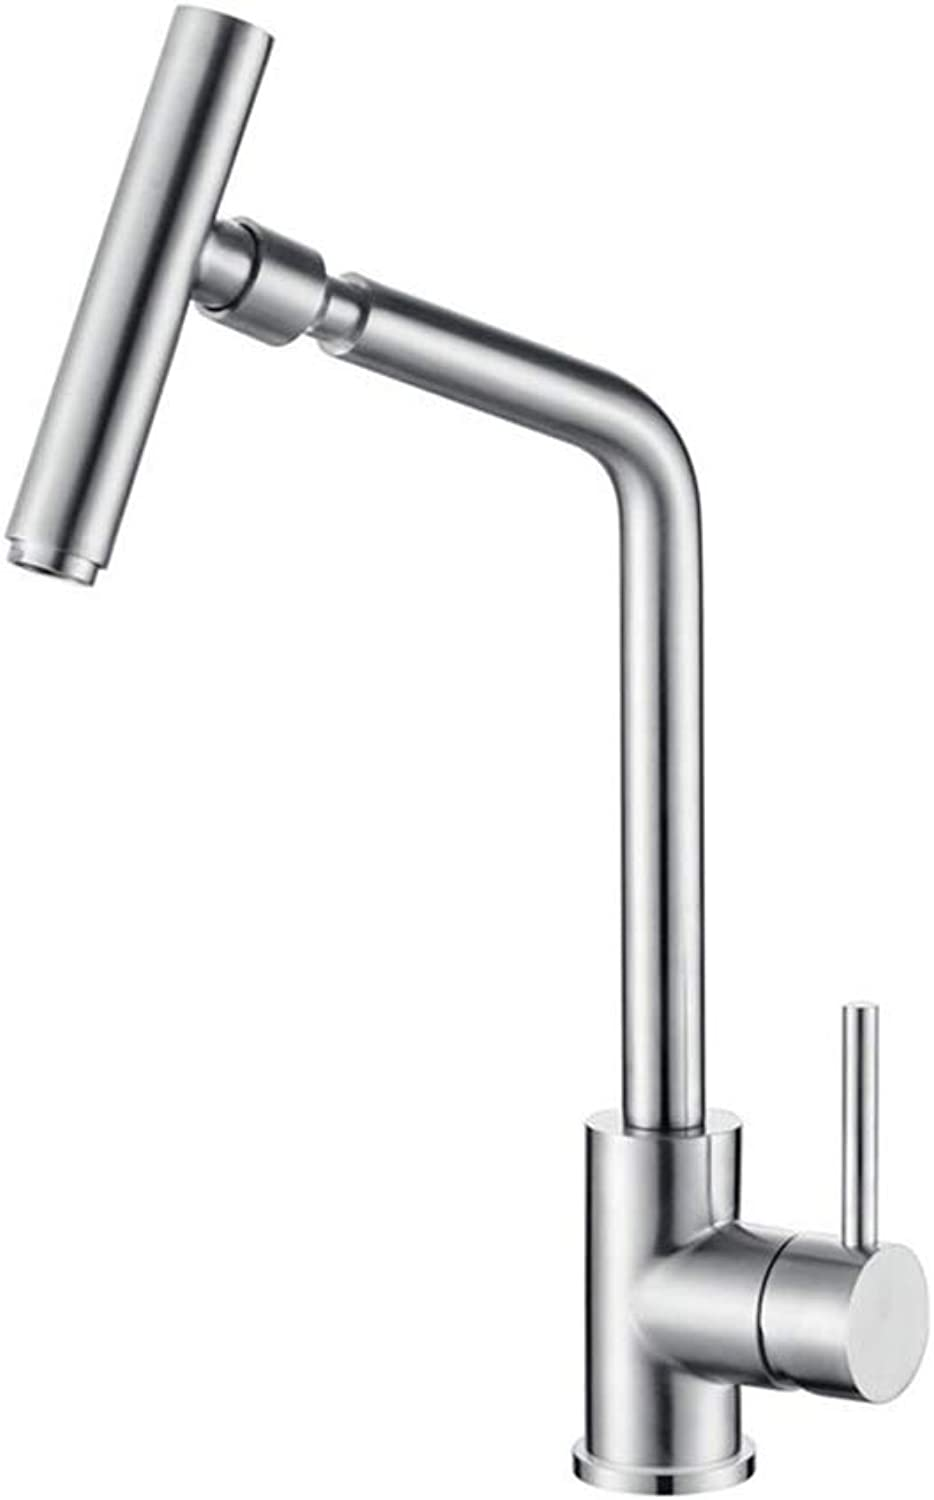 WETRR Kitchen faucet, Single Handle One Hole Electroplated Kitchen Taps, Multi-directional swivel swing kitchen sink faucet